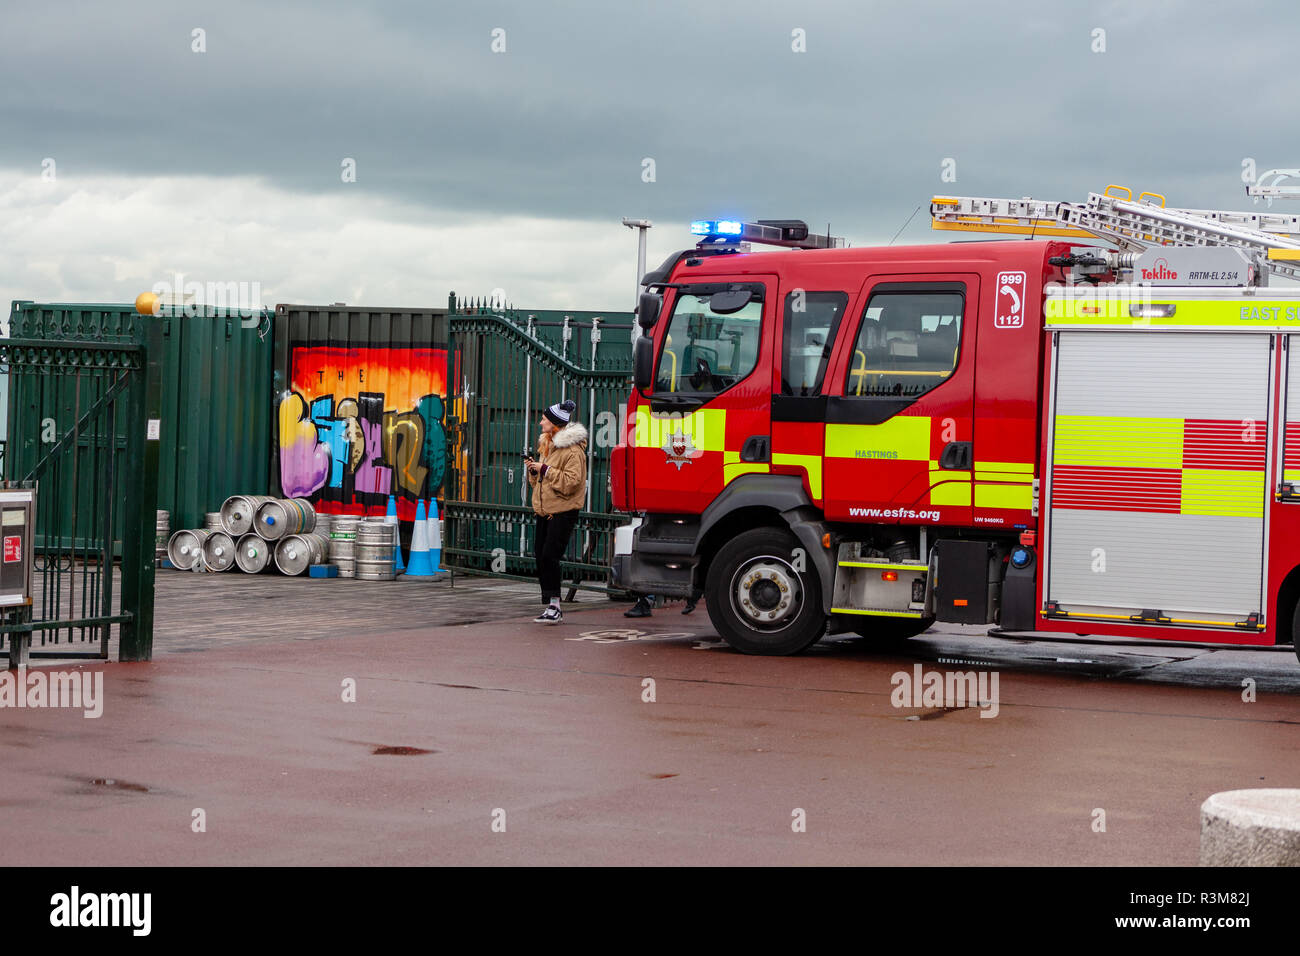 Hastings, East Sussex, UK: 24th November 2018: East Sussex Fire Brigade were called out to Hastings Pier after a small electrical fire broke out. Four fire engines attended the scene and the fire was quickily contained with minimal damage. Credit: SEUK News/Alamy Live News Stock Photo